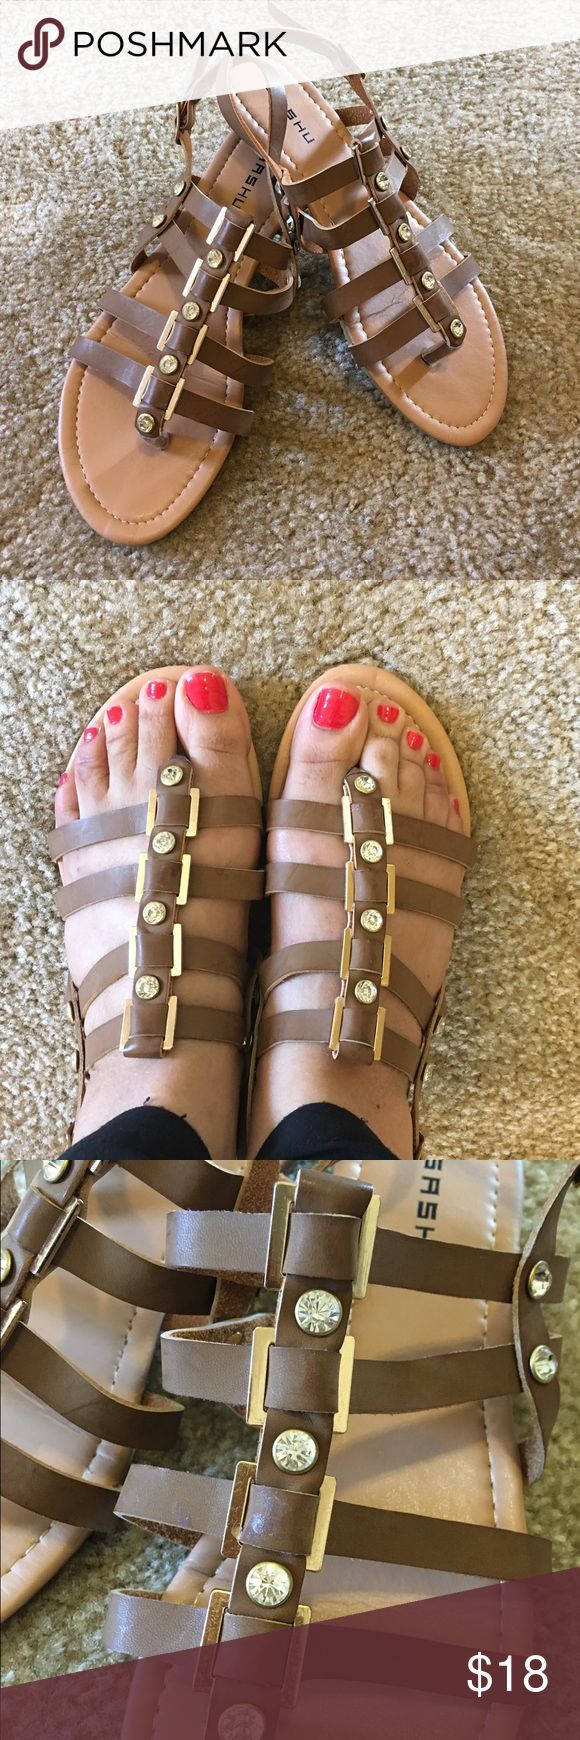 Trendy sandals Like new perfect condition Shoes Sandals